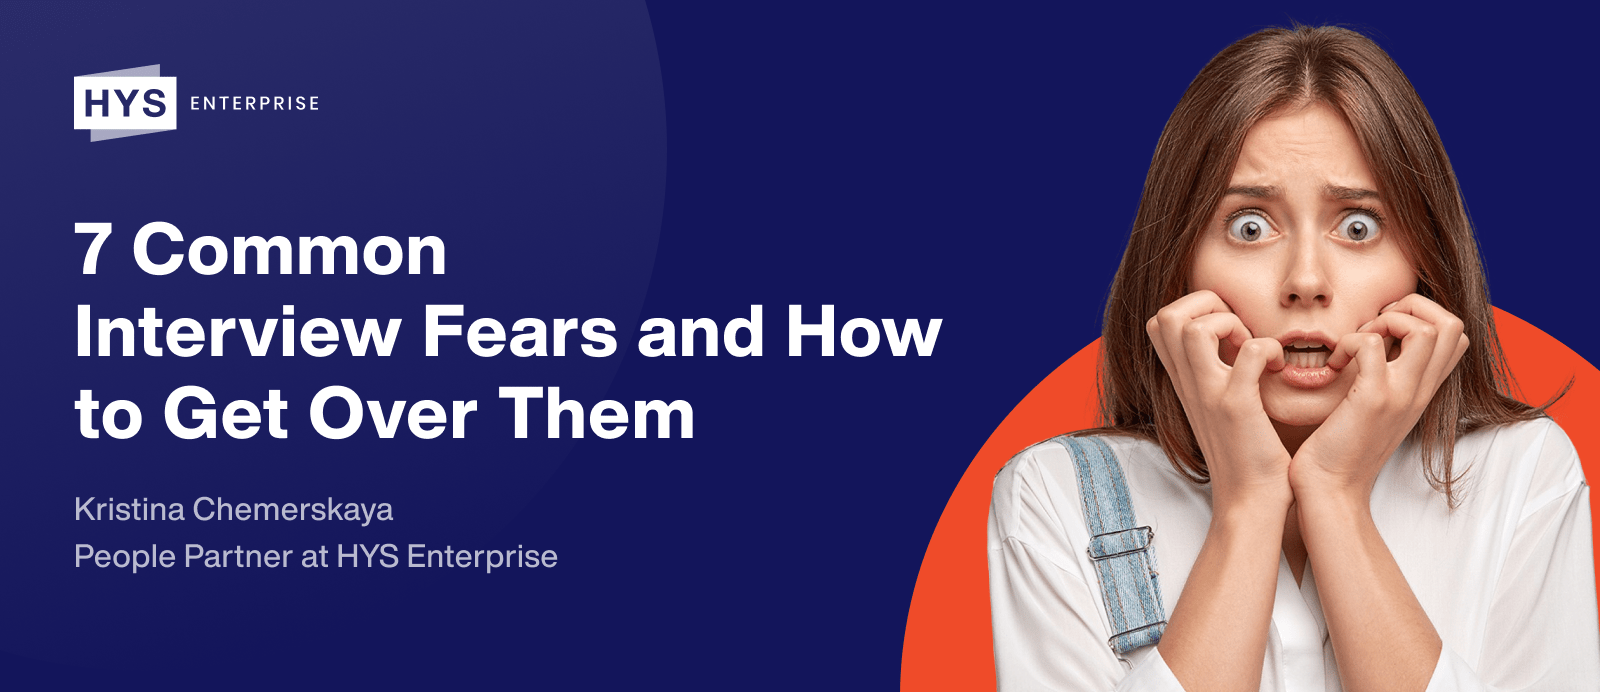 7 Common Interview Fears and How to Get Over Them